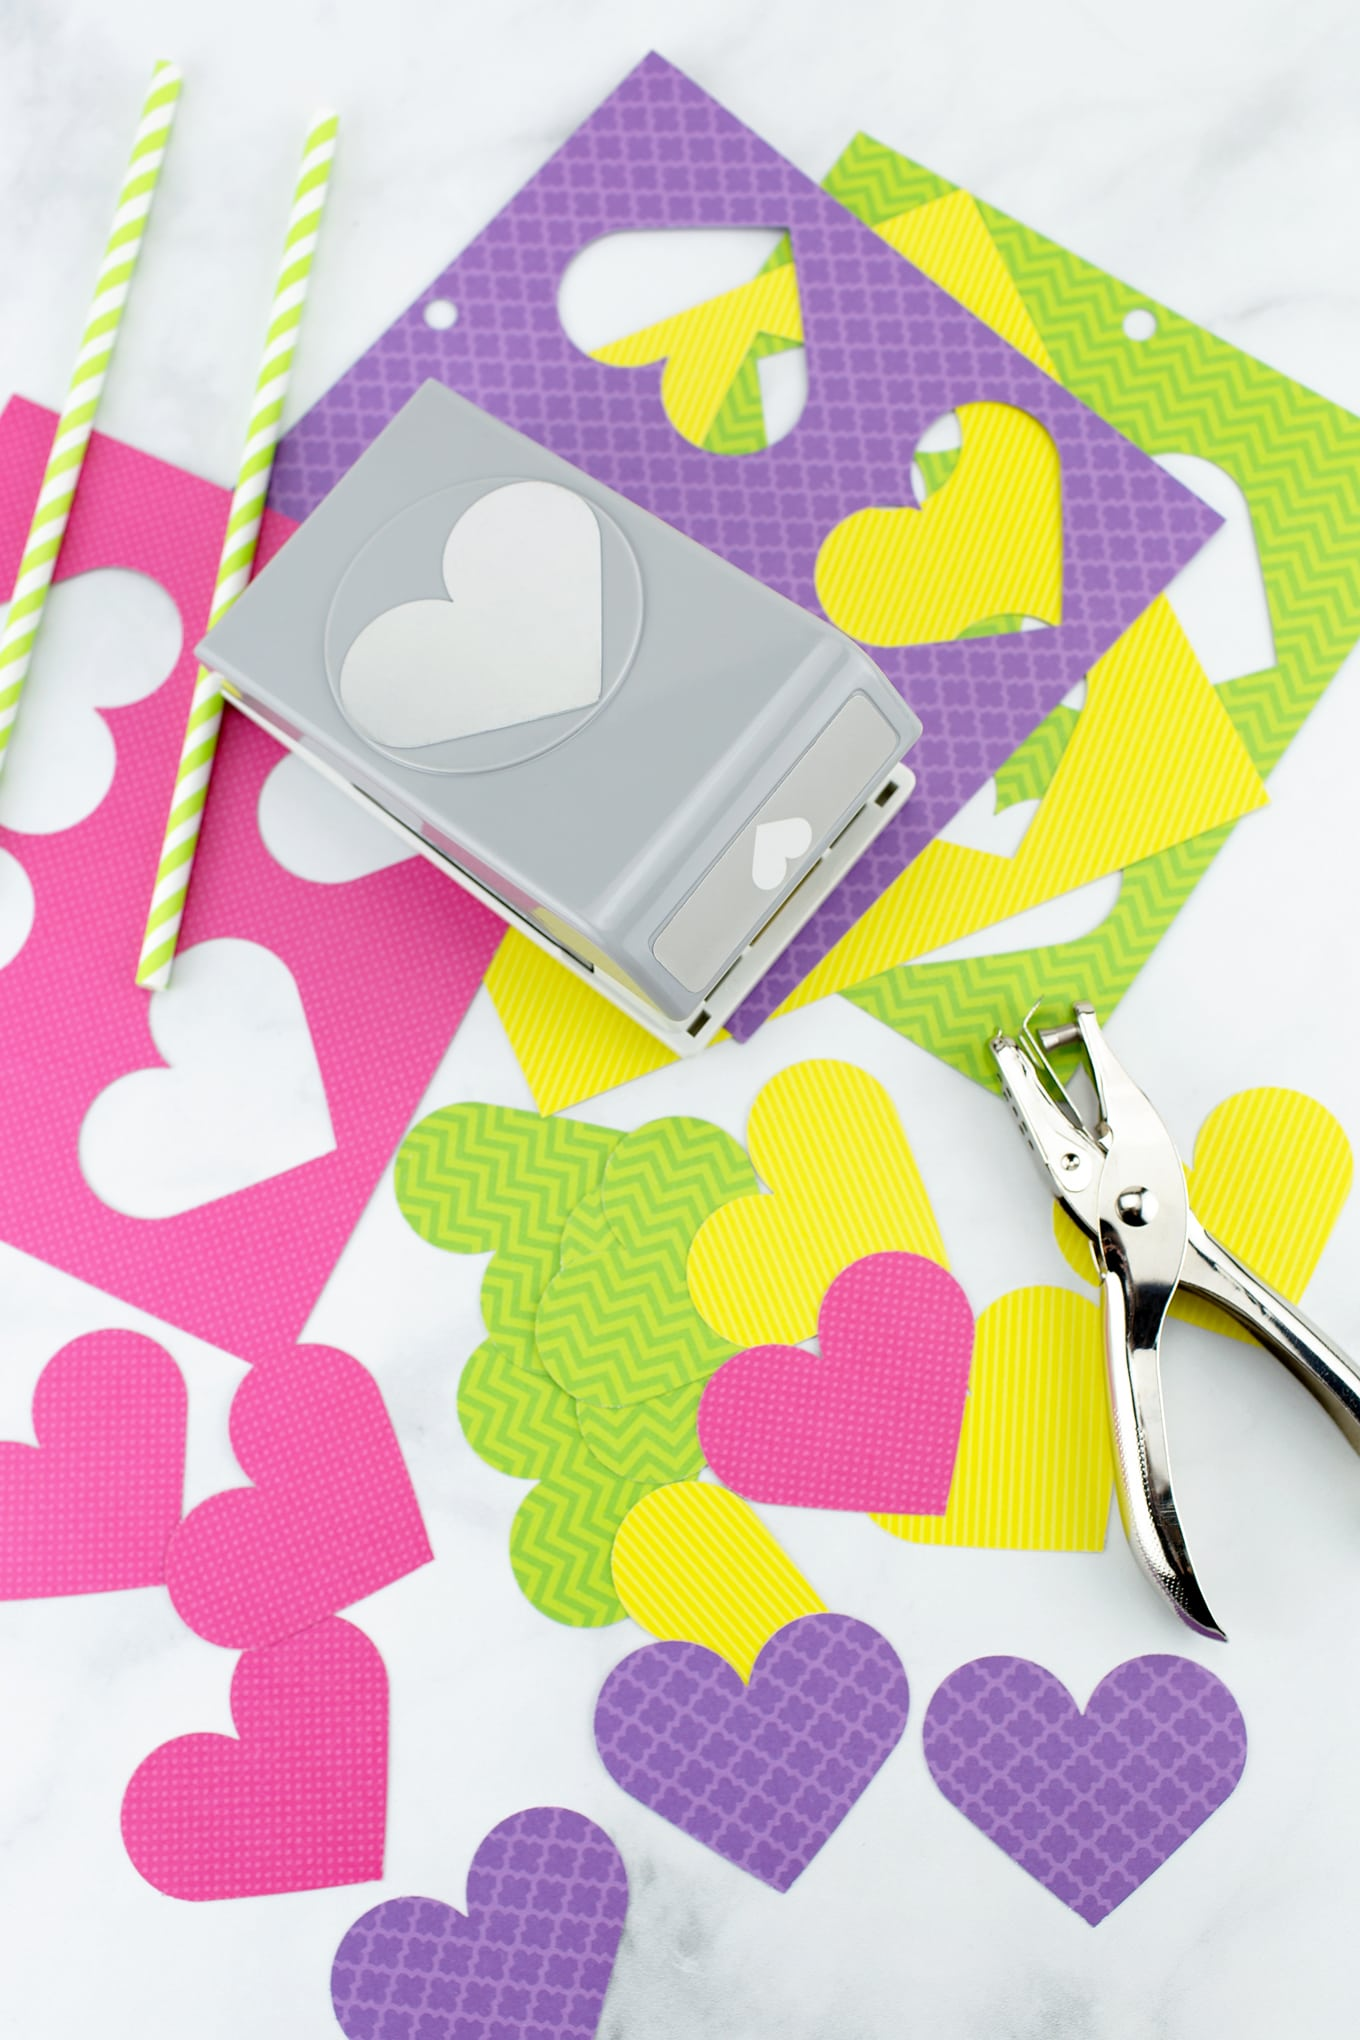 Materials Needed for Paper Heart Flowers